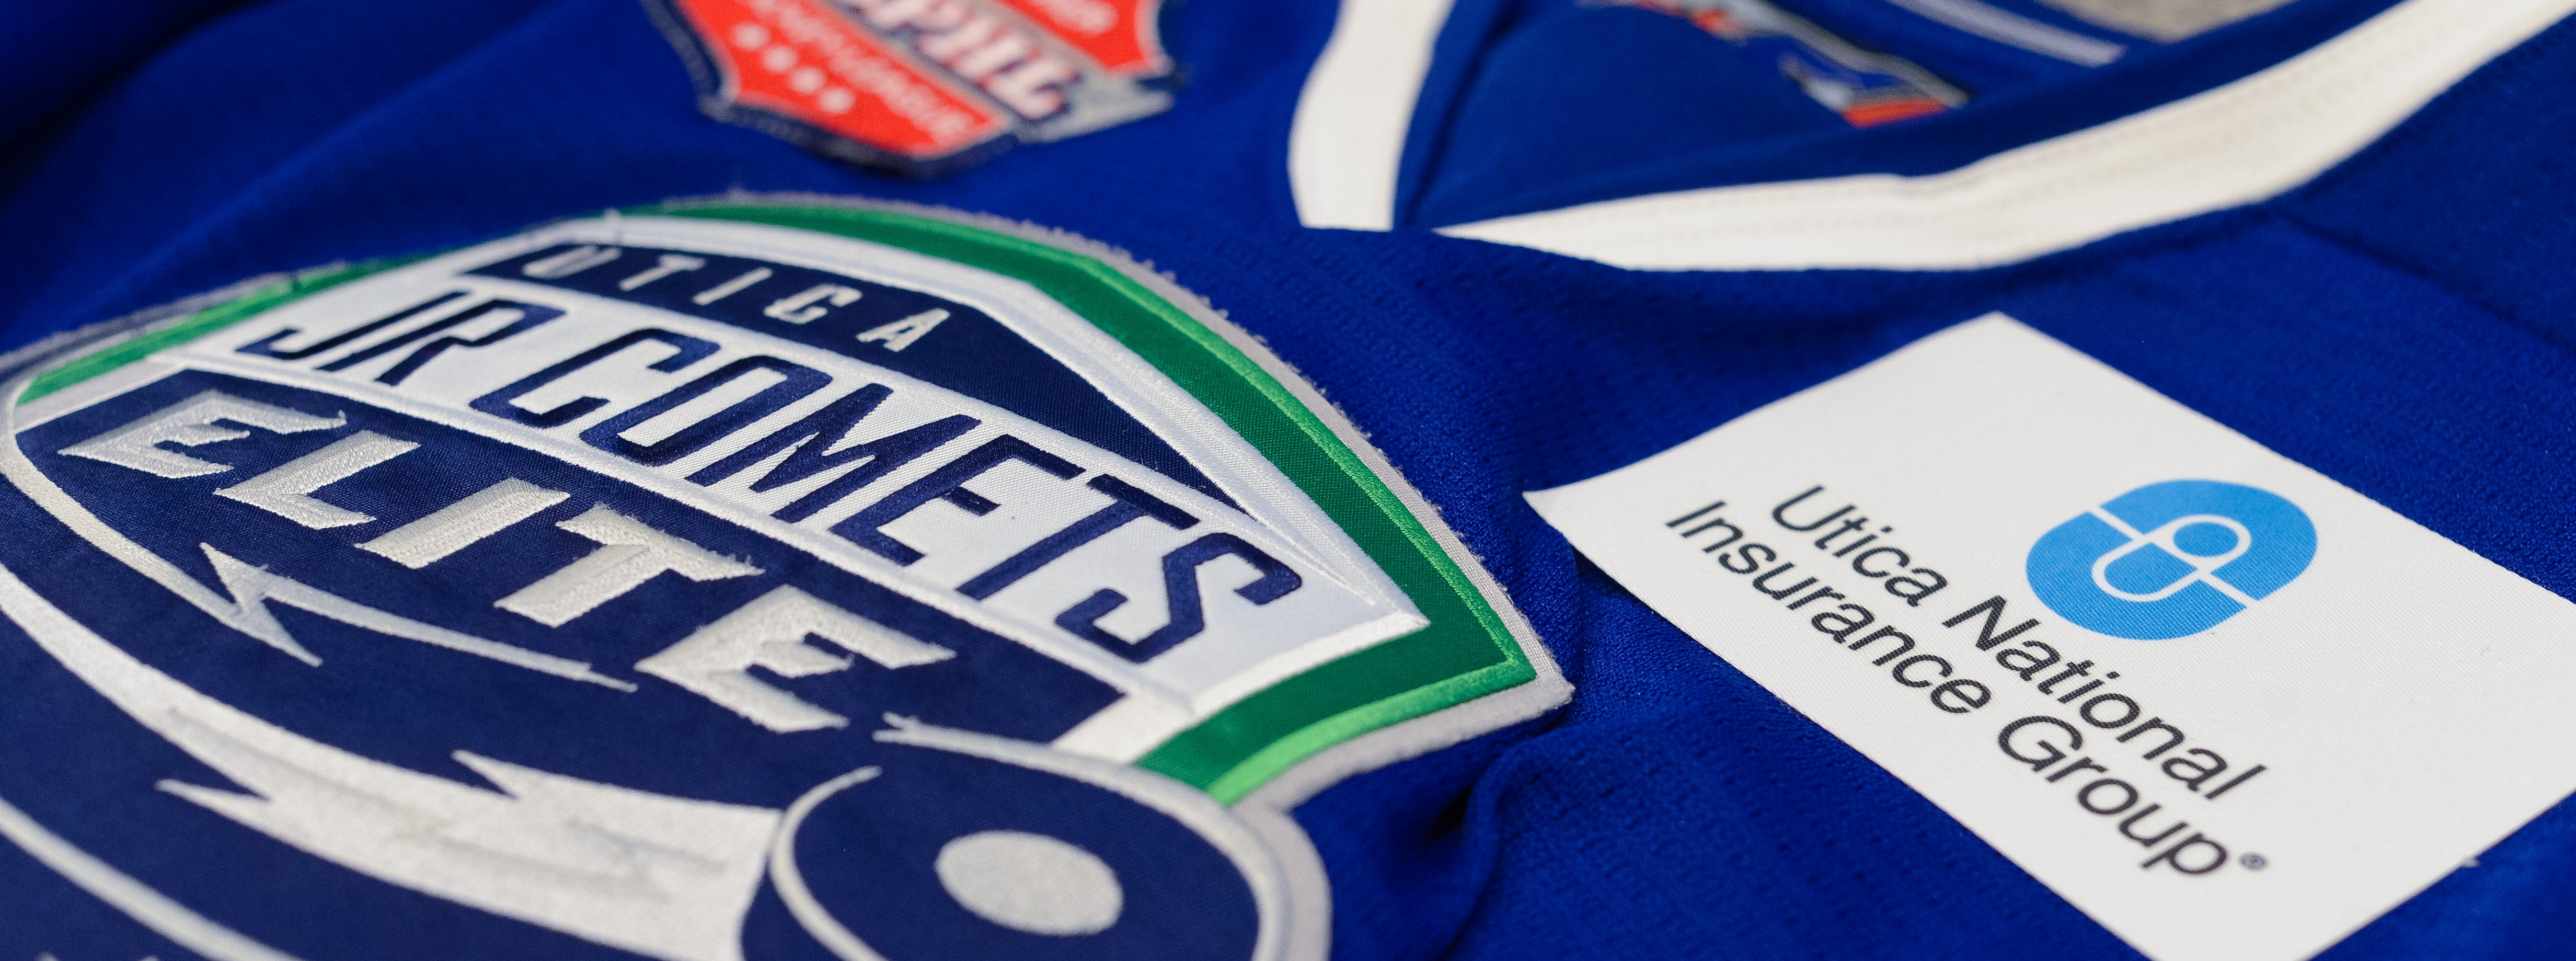 UTICA COMETS ANNOUNCE PARTNERSHIP WITH UTICA NATIONAL